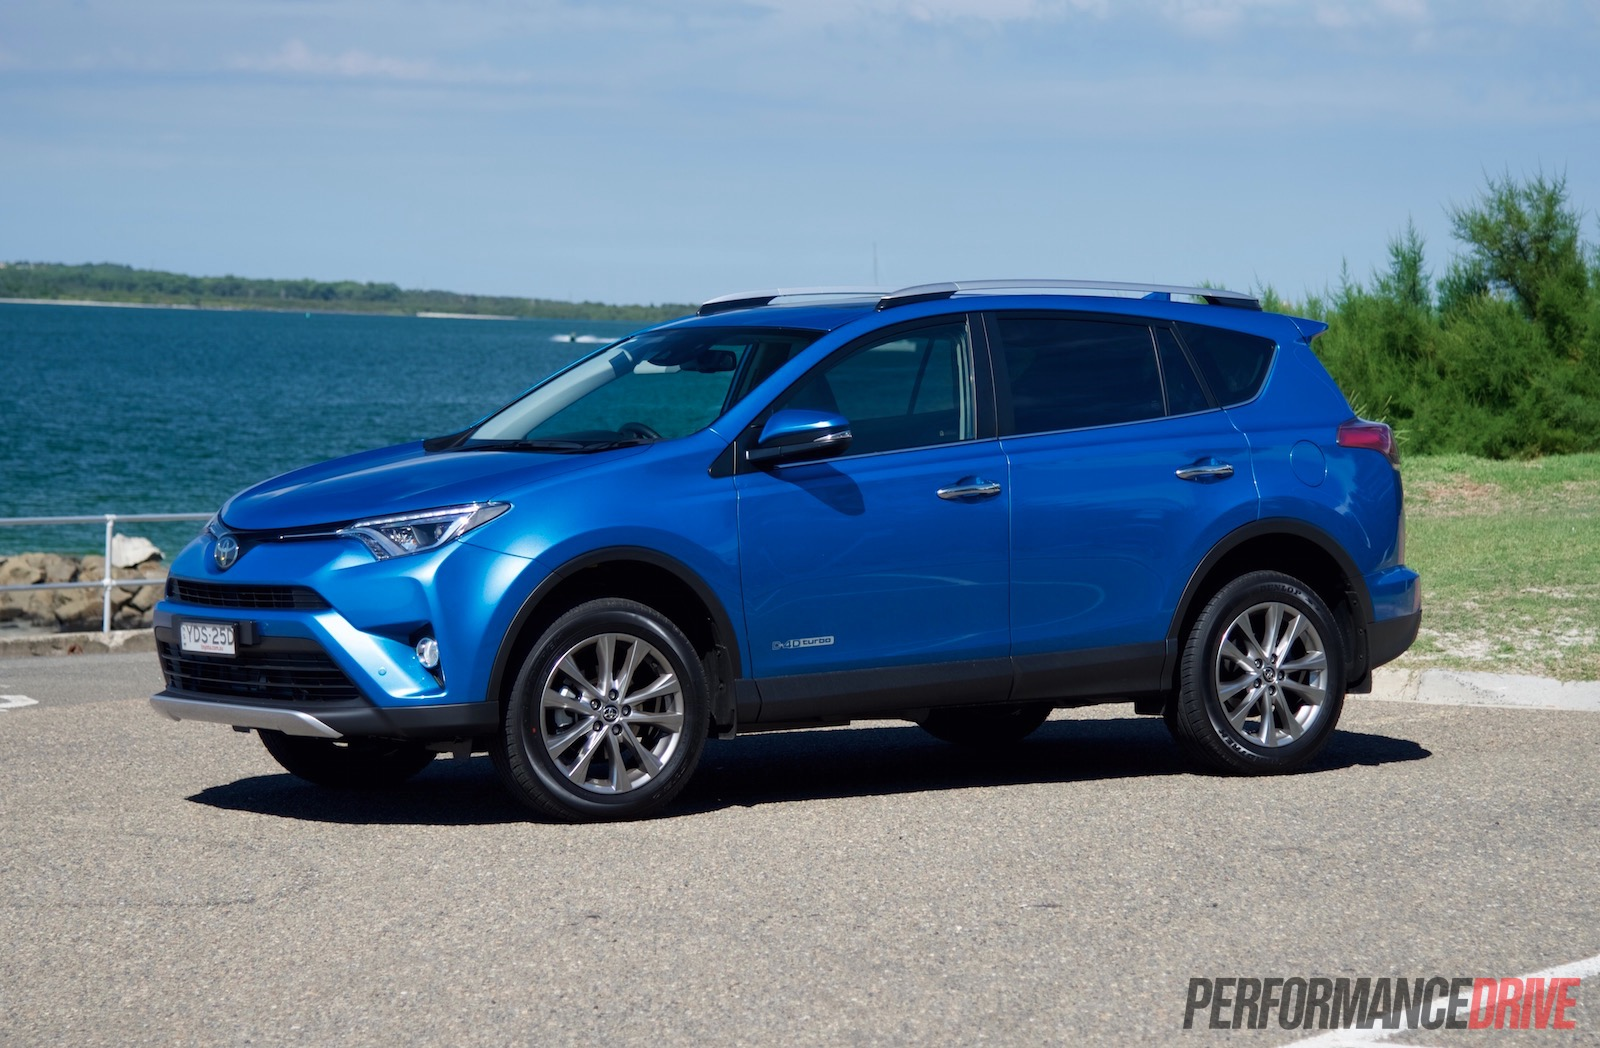 2016 toyota rav4 cruiser diesel review quick test video performancedrive. Black Bedroom Furniture Sets. Home Design Ideas